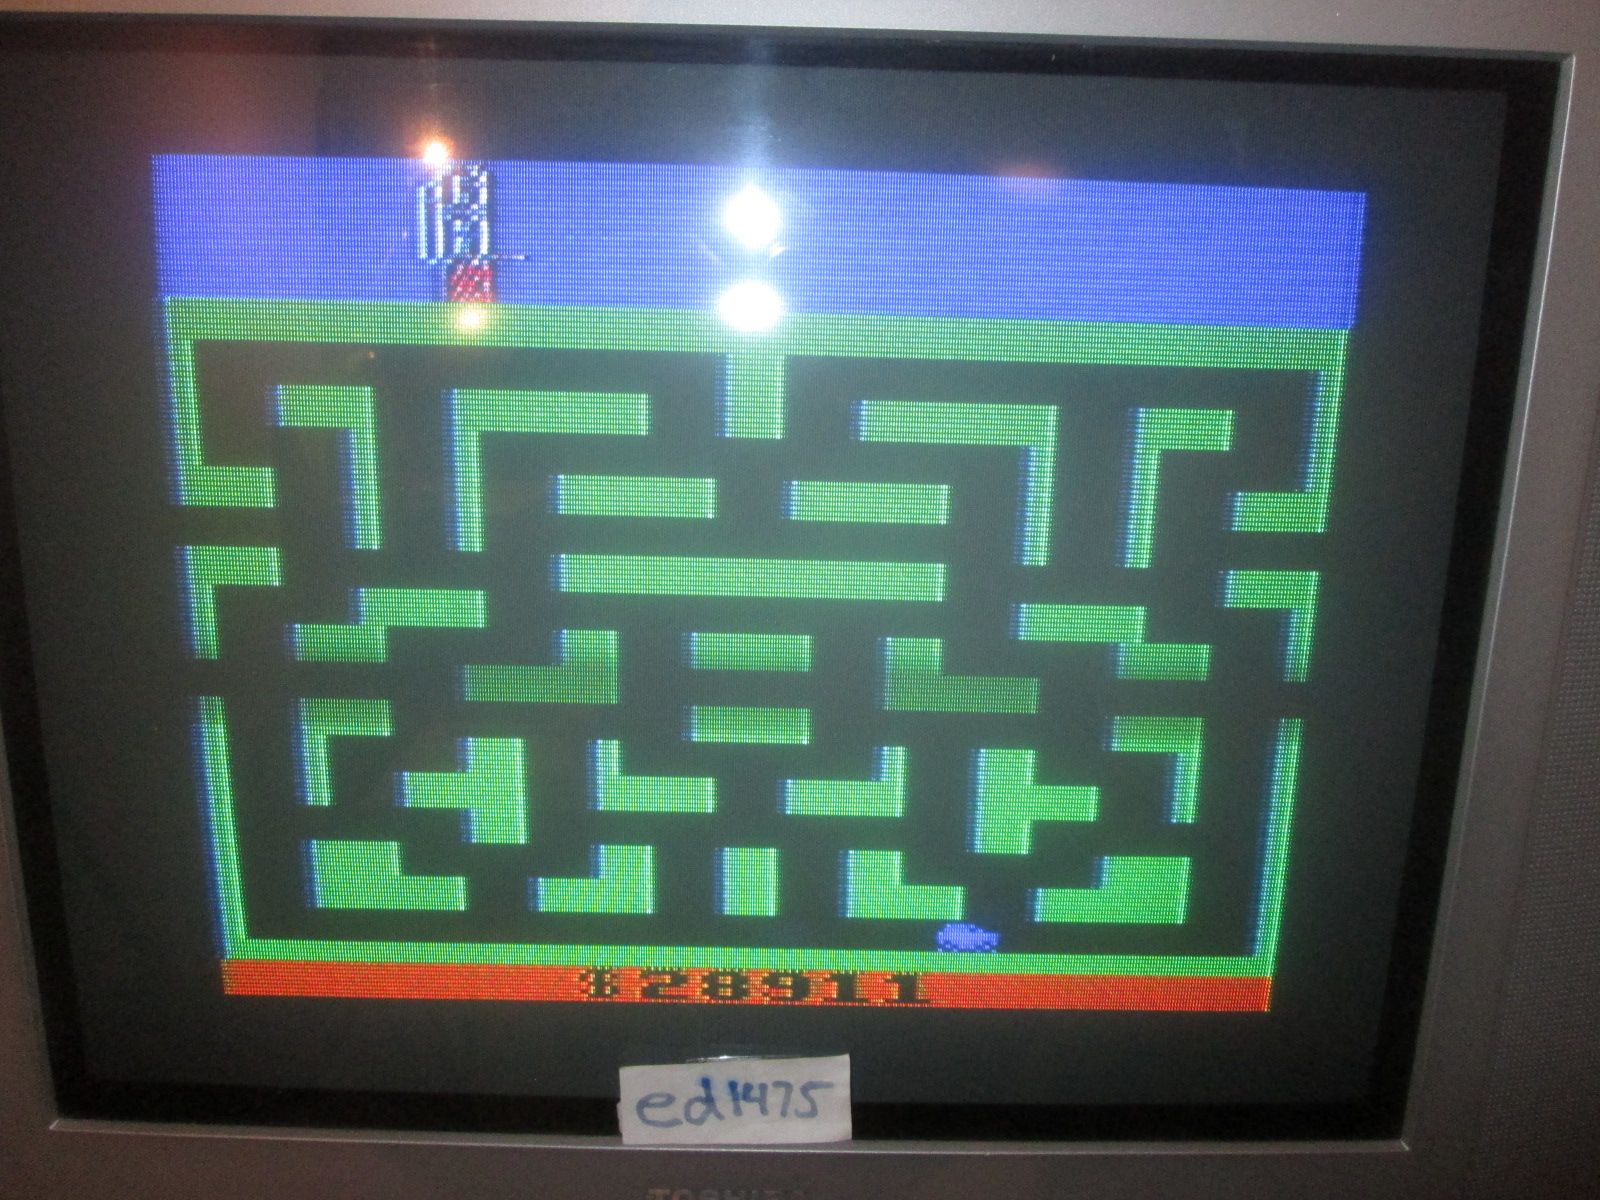 ed1475: Bank Heist (Atari 2600 Novice/B) 28,911 points on 2015-02-06 18:29:05